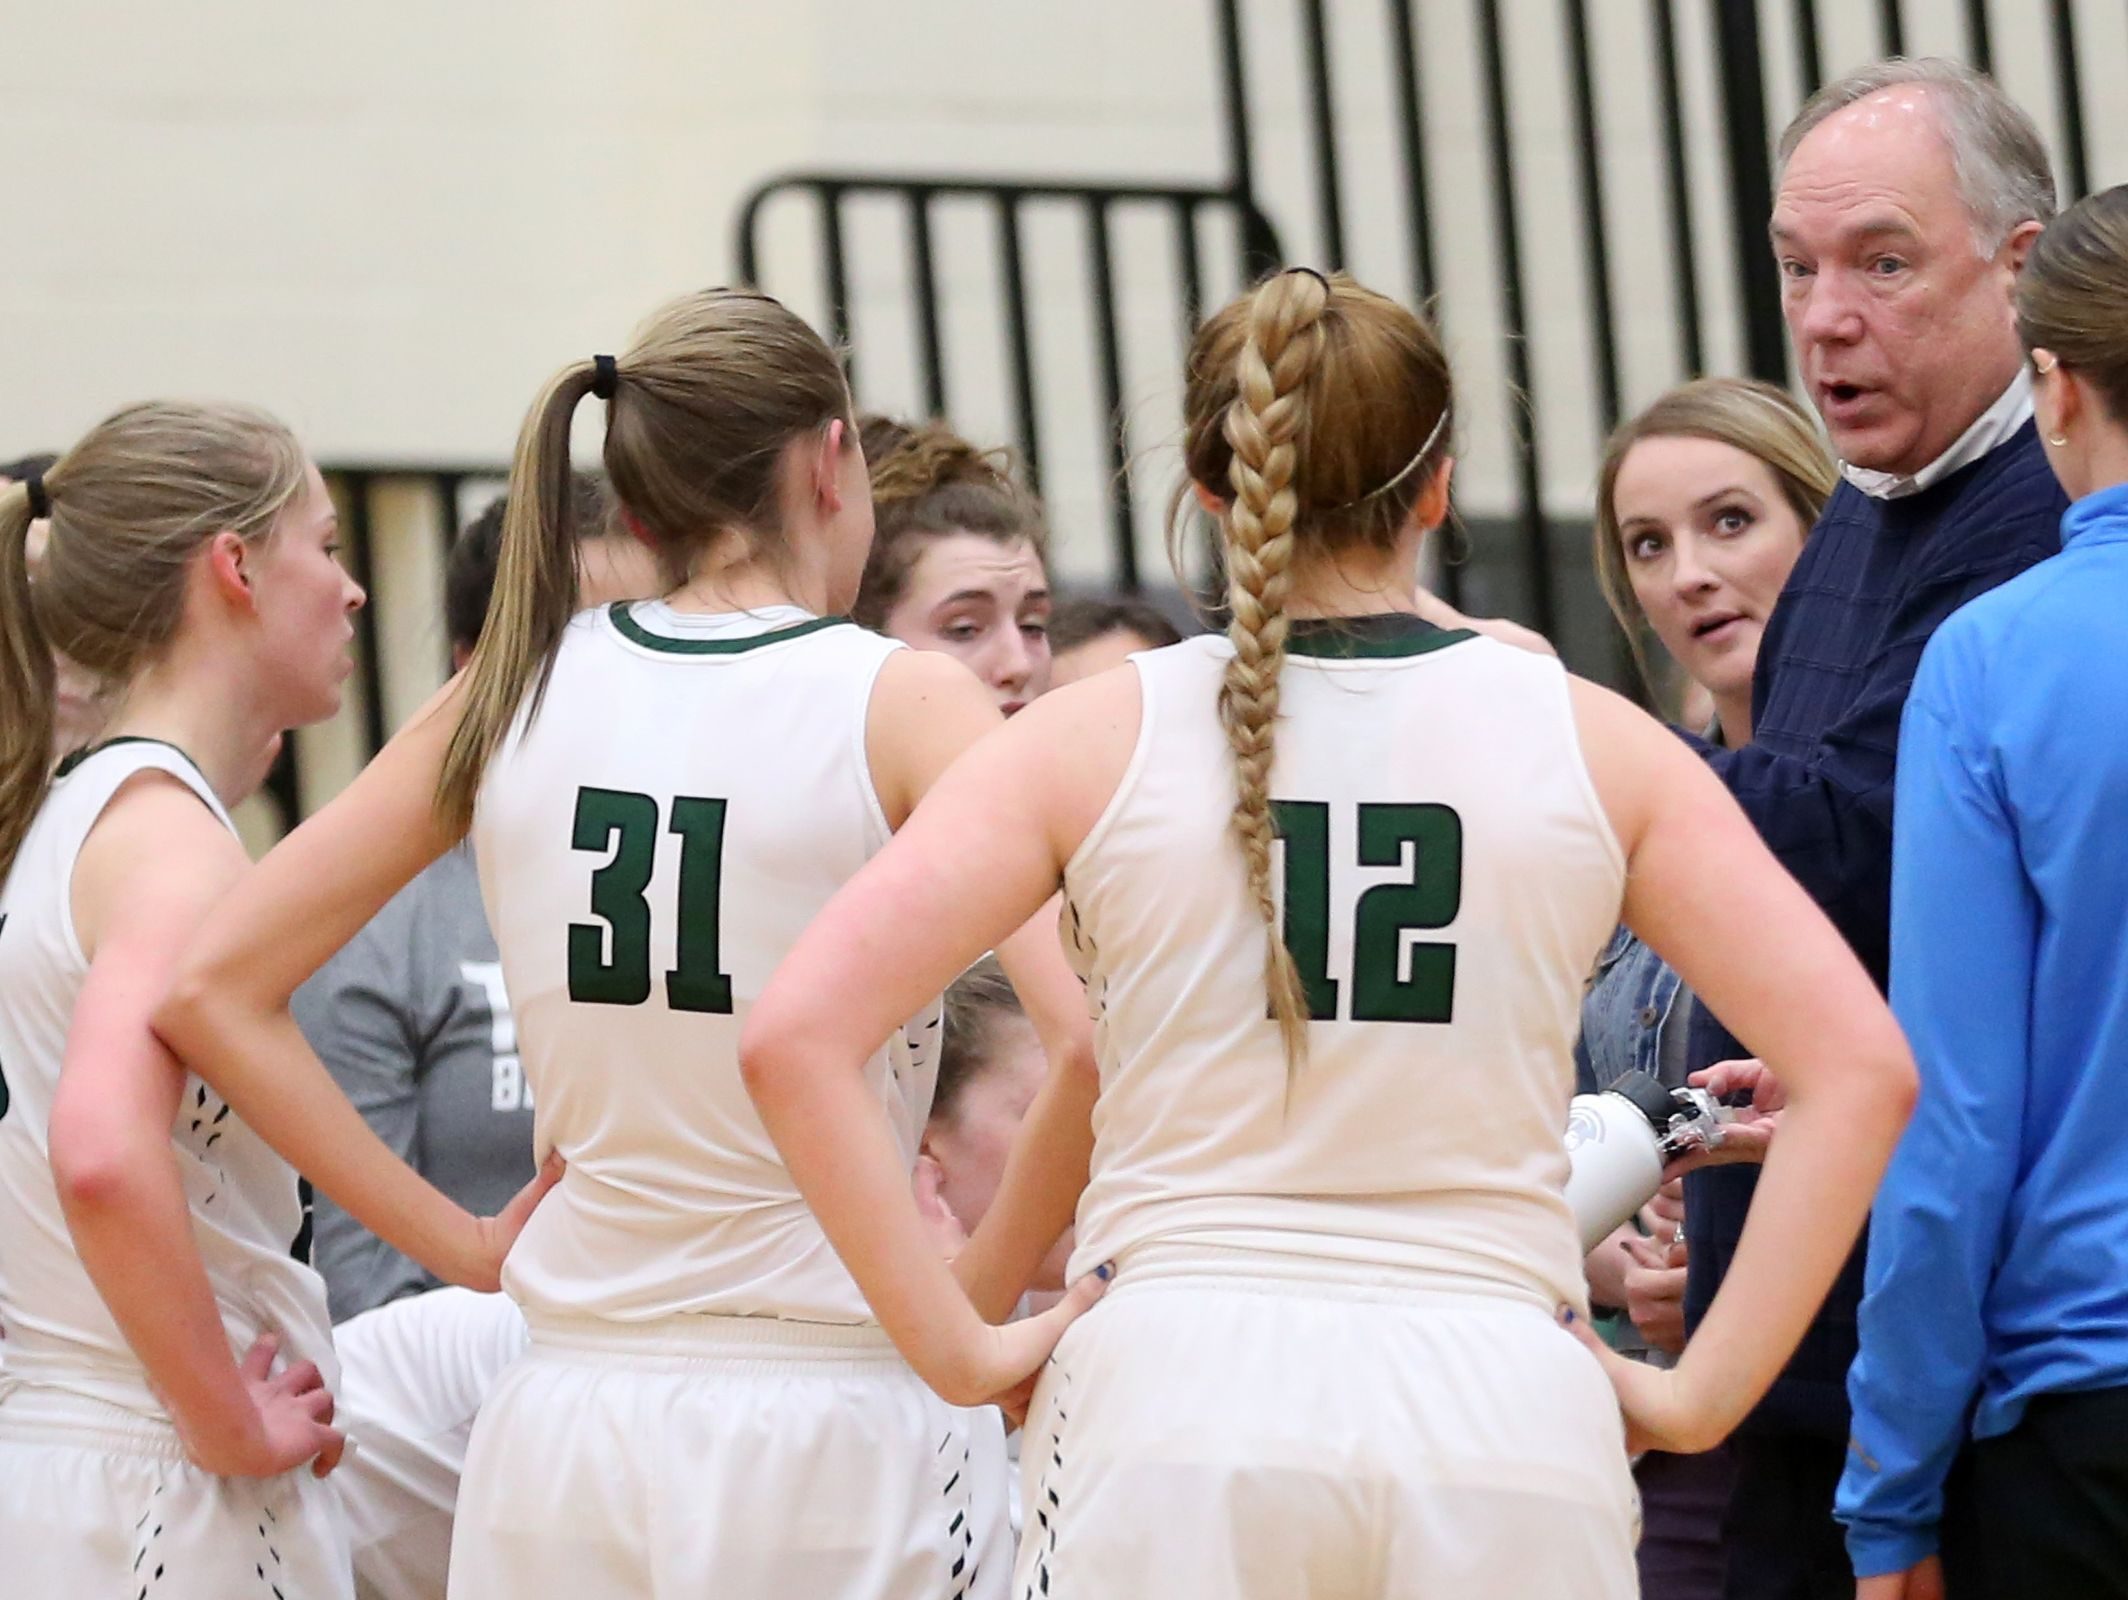 West Salem head coach Terry Williams talks to his team during the first half of the Central Catholic vs. West Salem girl's basketball game, in the first round of the OSAA State Championships playoffs, at West Salem High School on Wednesday, March 1, 2017. West Salem won the gam 53-46. They will play South Salem in Round 2 of the OSAA State Championships playoffs on March 4.